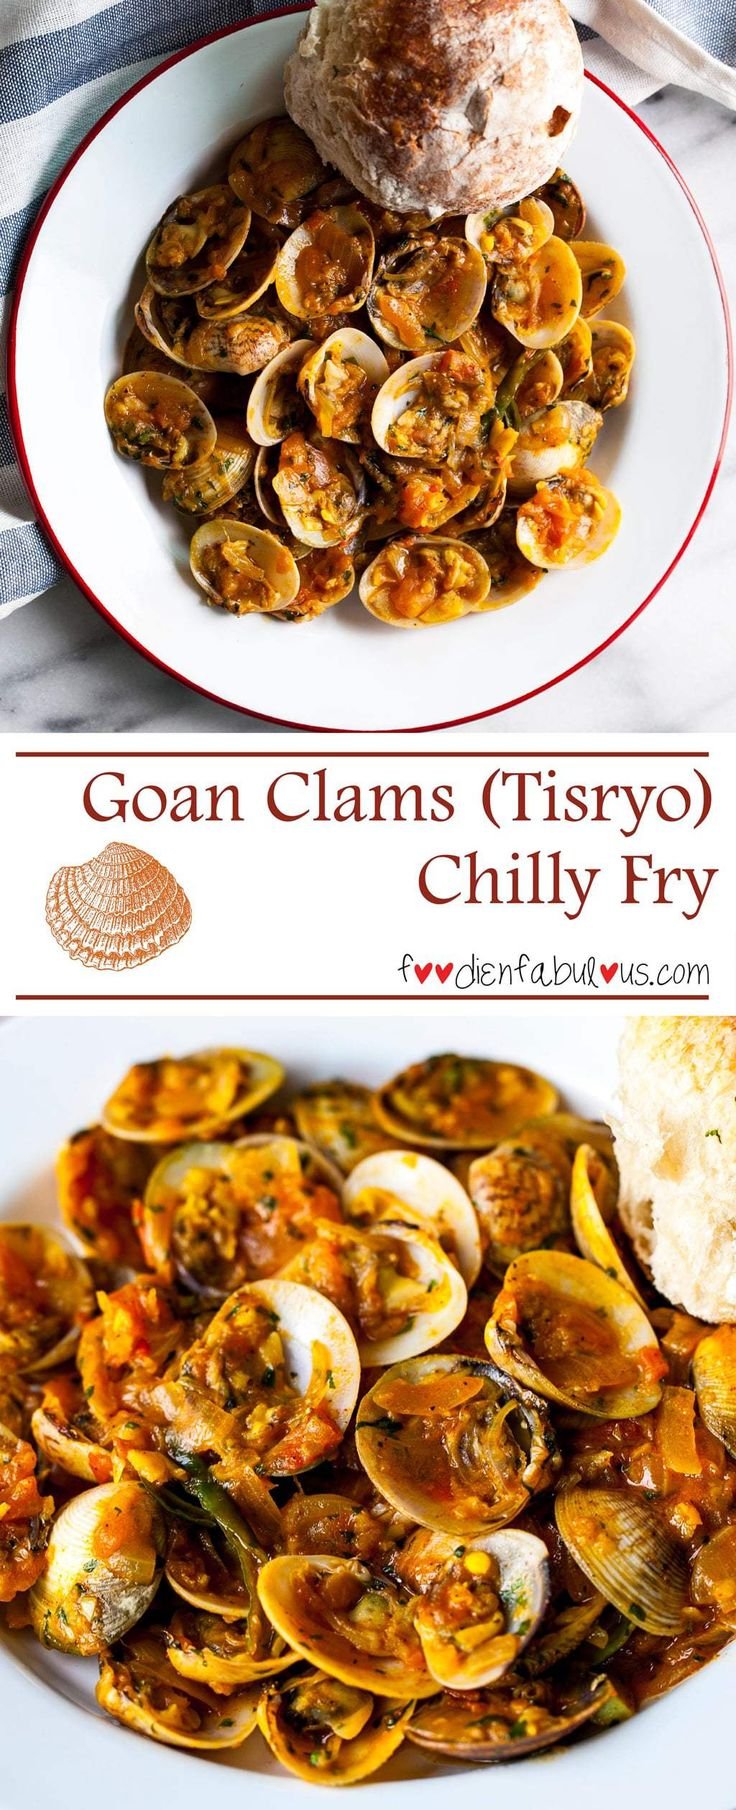 Tangy, yet spicy kick to this famous Goan Clams Chilli Fry recipe that is in every restaurant/shack menu in Goa. Perfect with crusty bread.